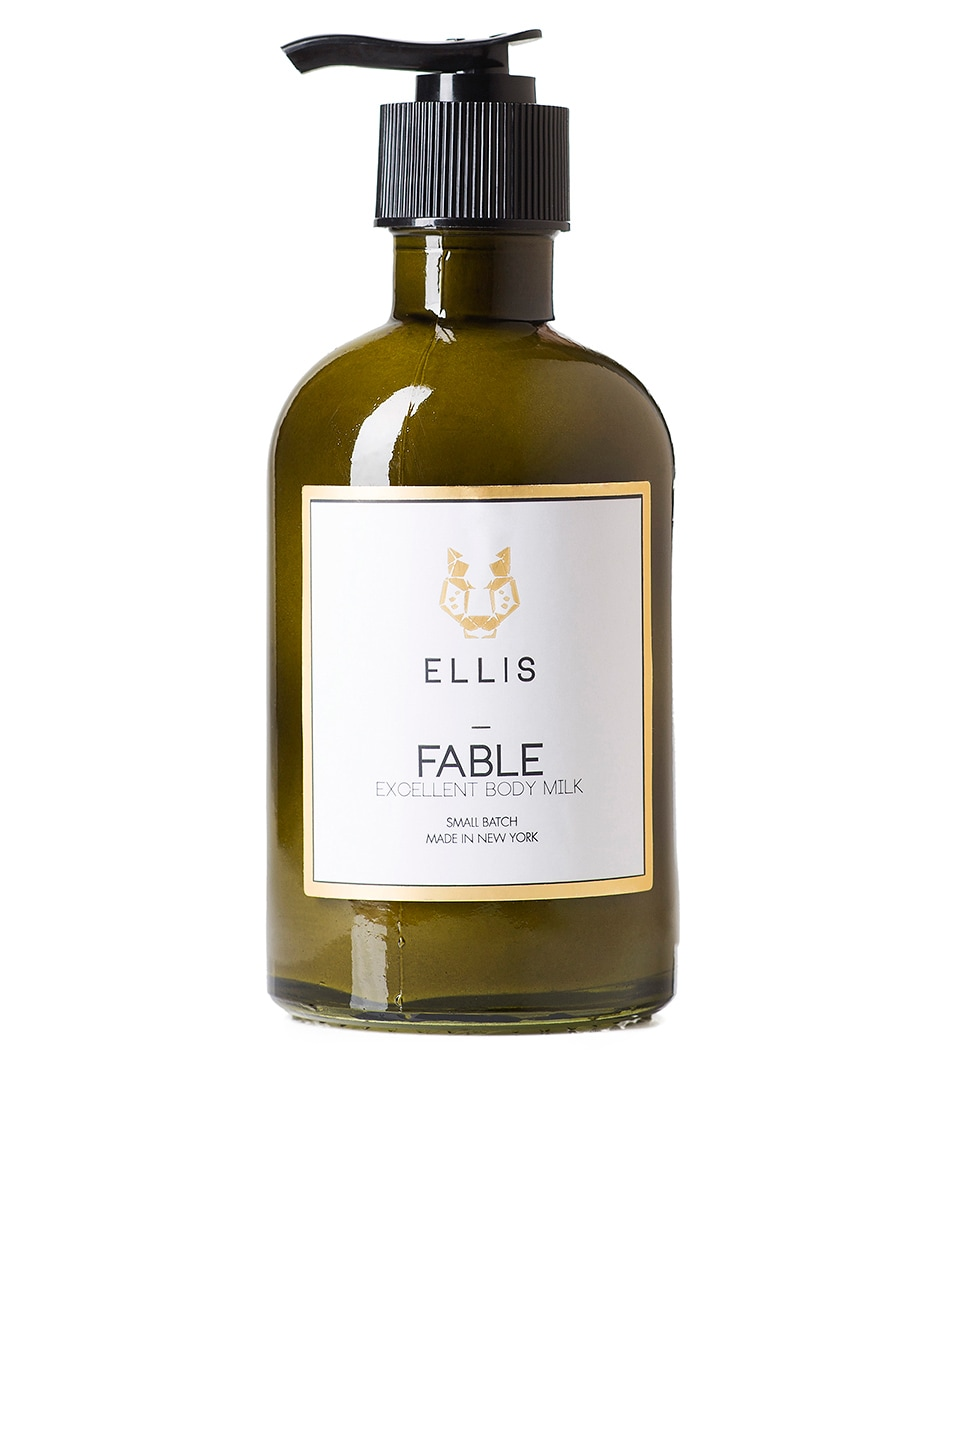 Ellis Brooklyn Fable Excellent Body Milk in Fable